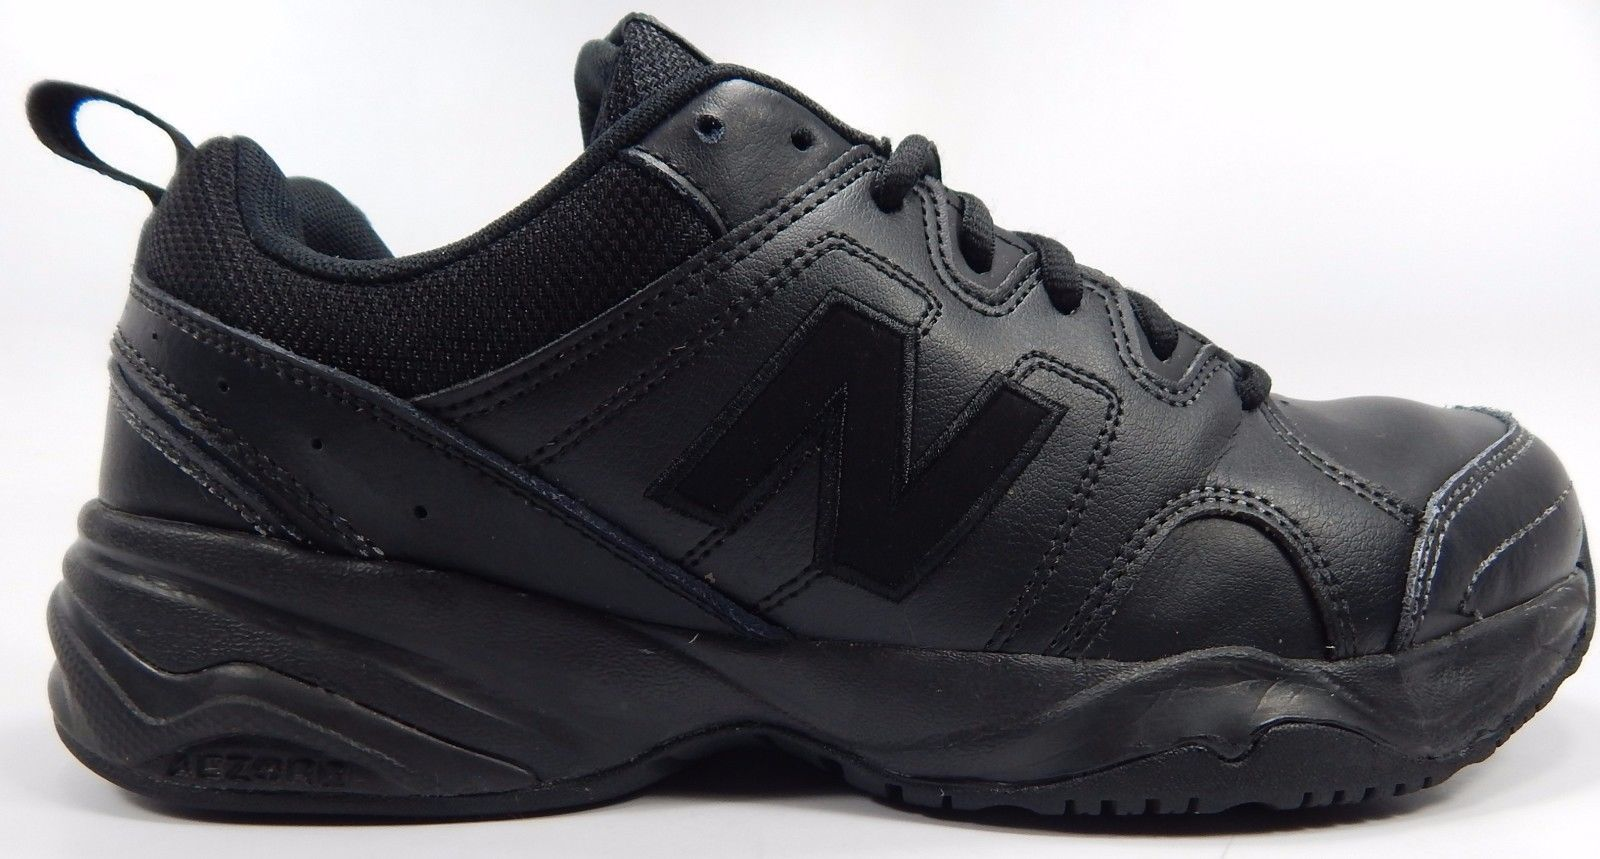 New Balance 609 v3 Men's Cross Training Shoes Size US 9.5 M (D) EU 43 MX609BX3